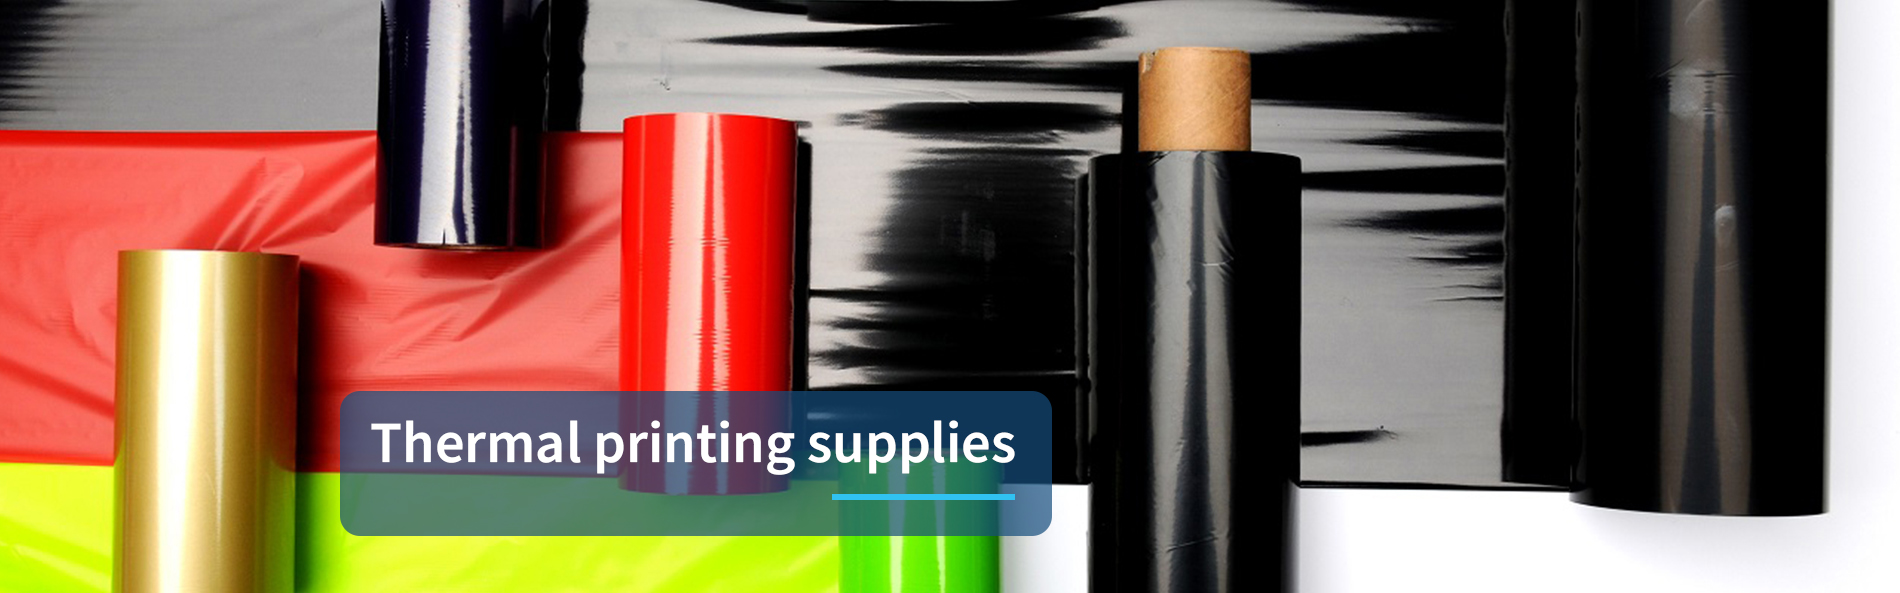 Thermal Printing Supplies